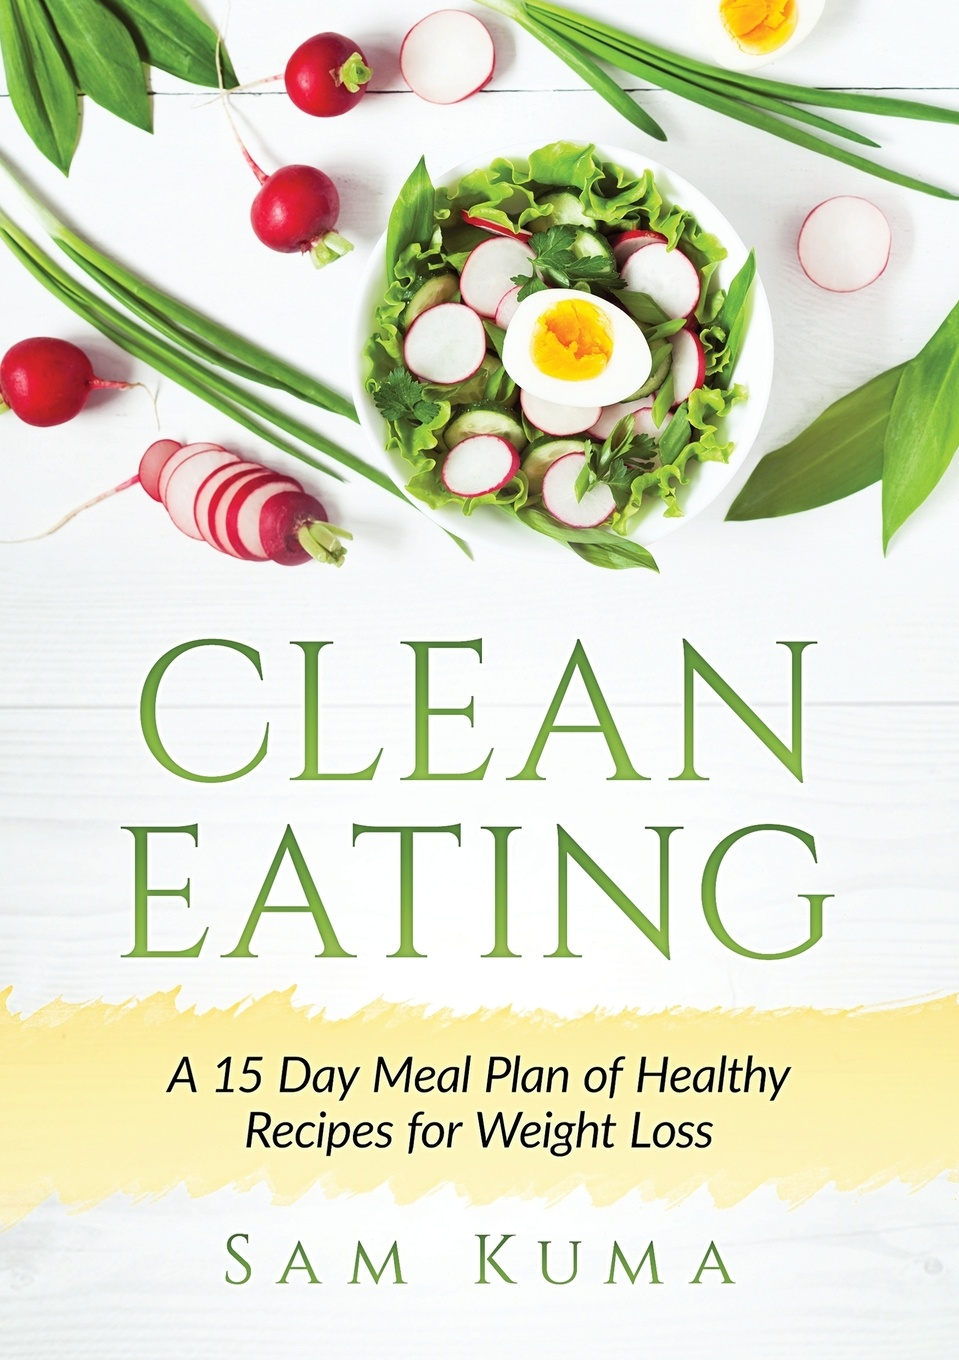 Фото - Sam Kuma Clean Eating. A 15 Day Meal Plan of Healthy Recipes for Weight Loss karen parker carter irene healthy cooking fat loss with clean eating